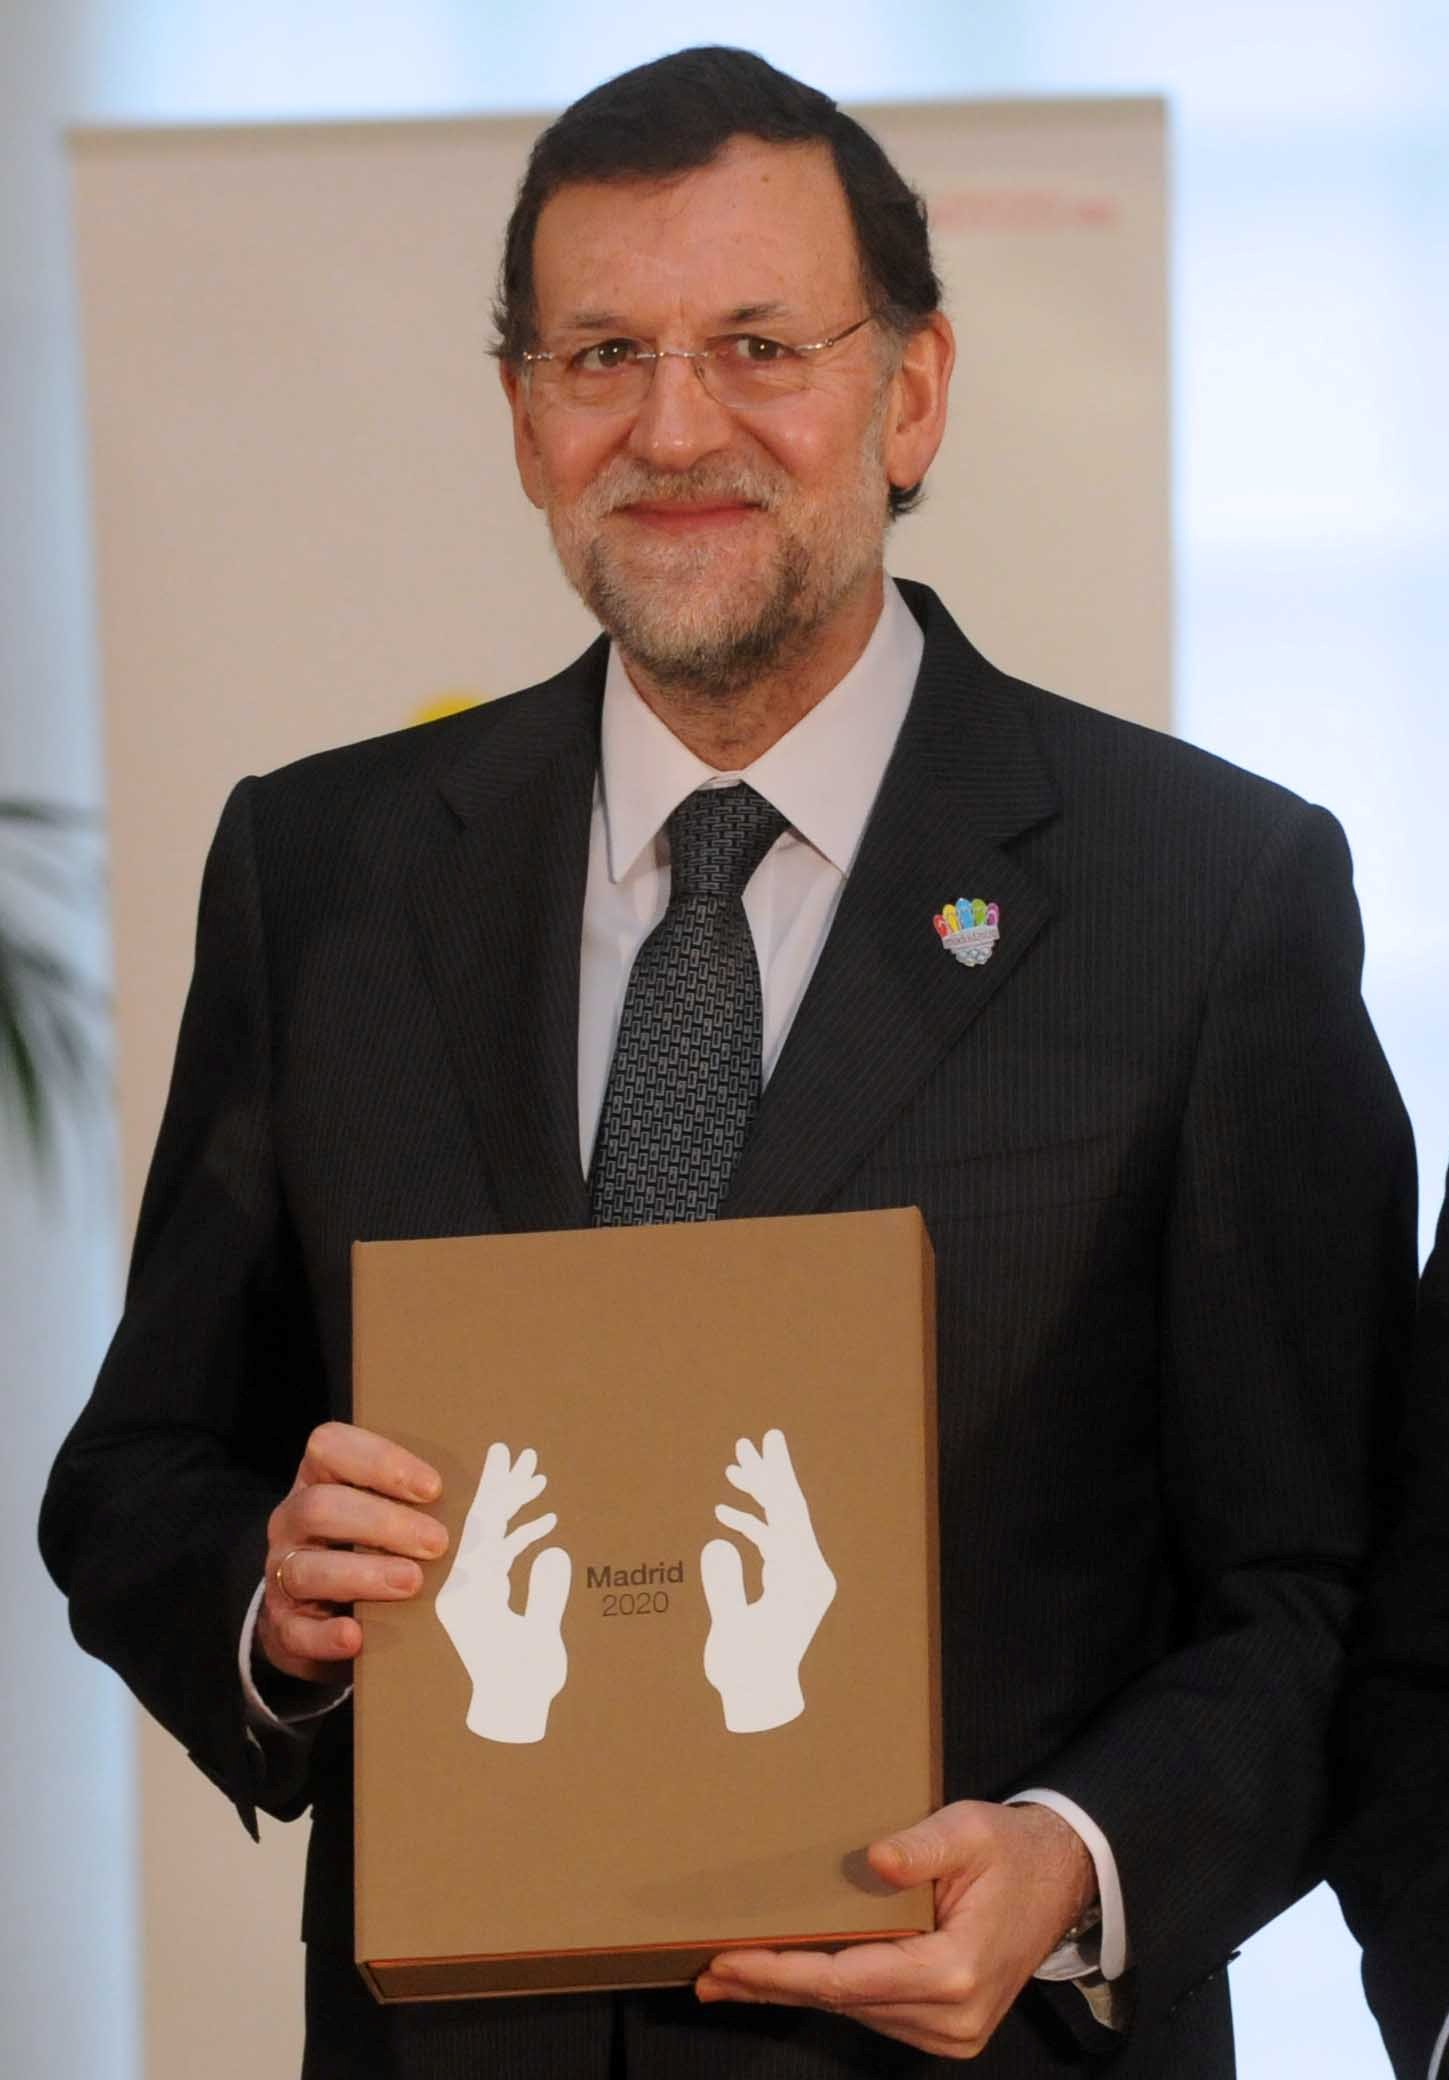 Madrid 2020 present candidature file to Mariano Rajoy